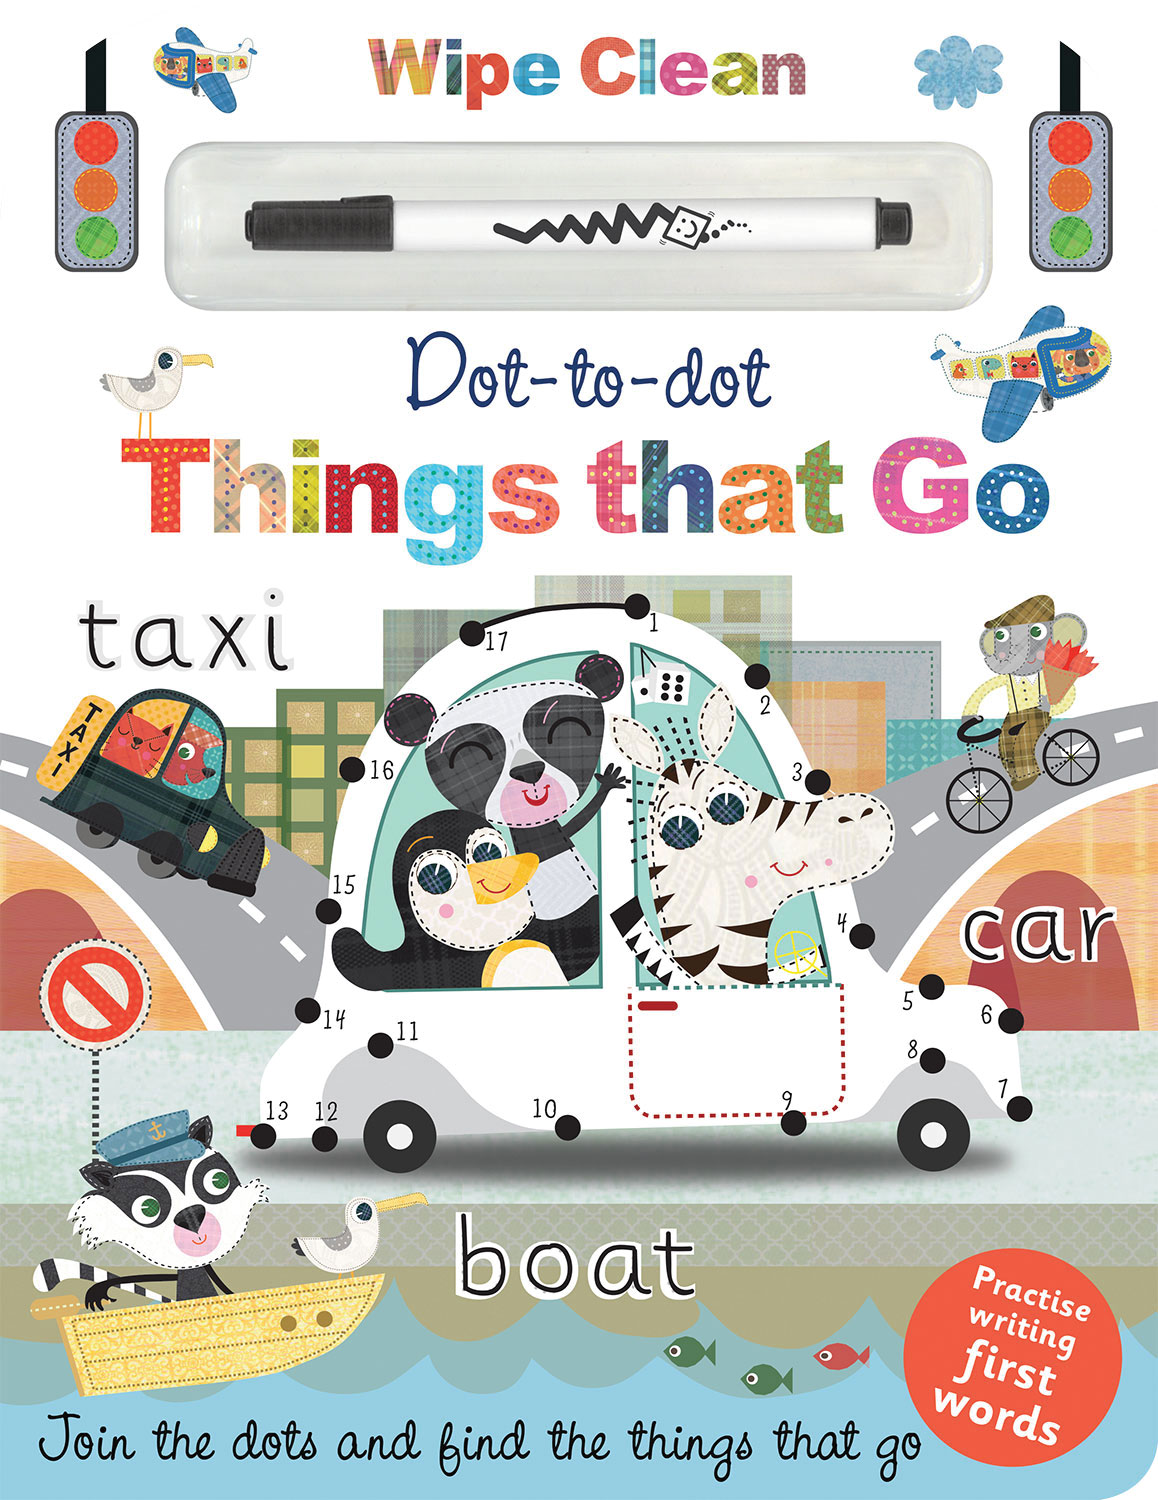 DOT TO DOT THINGS THAT GO